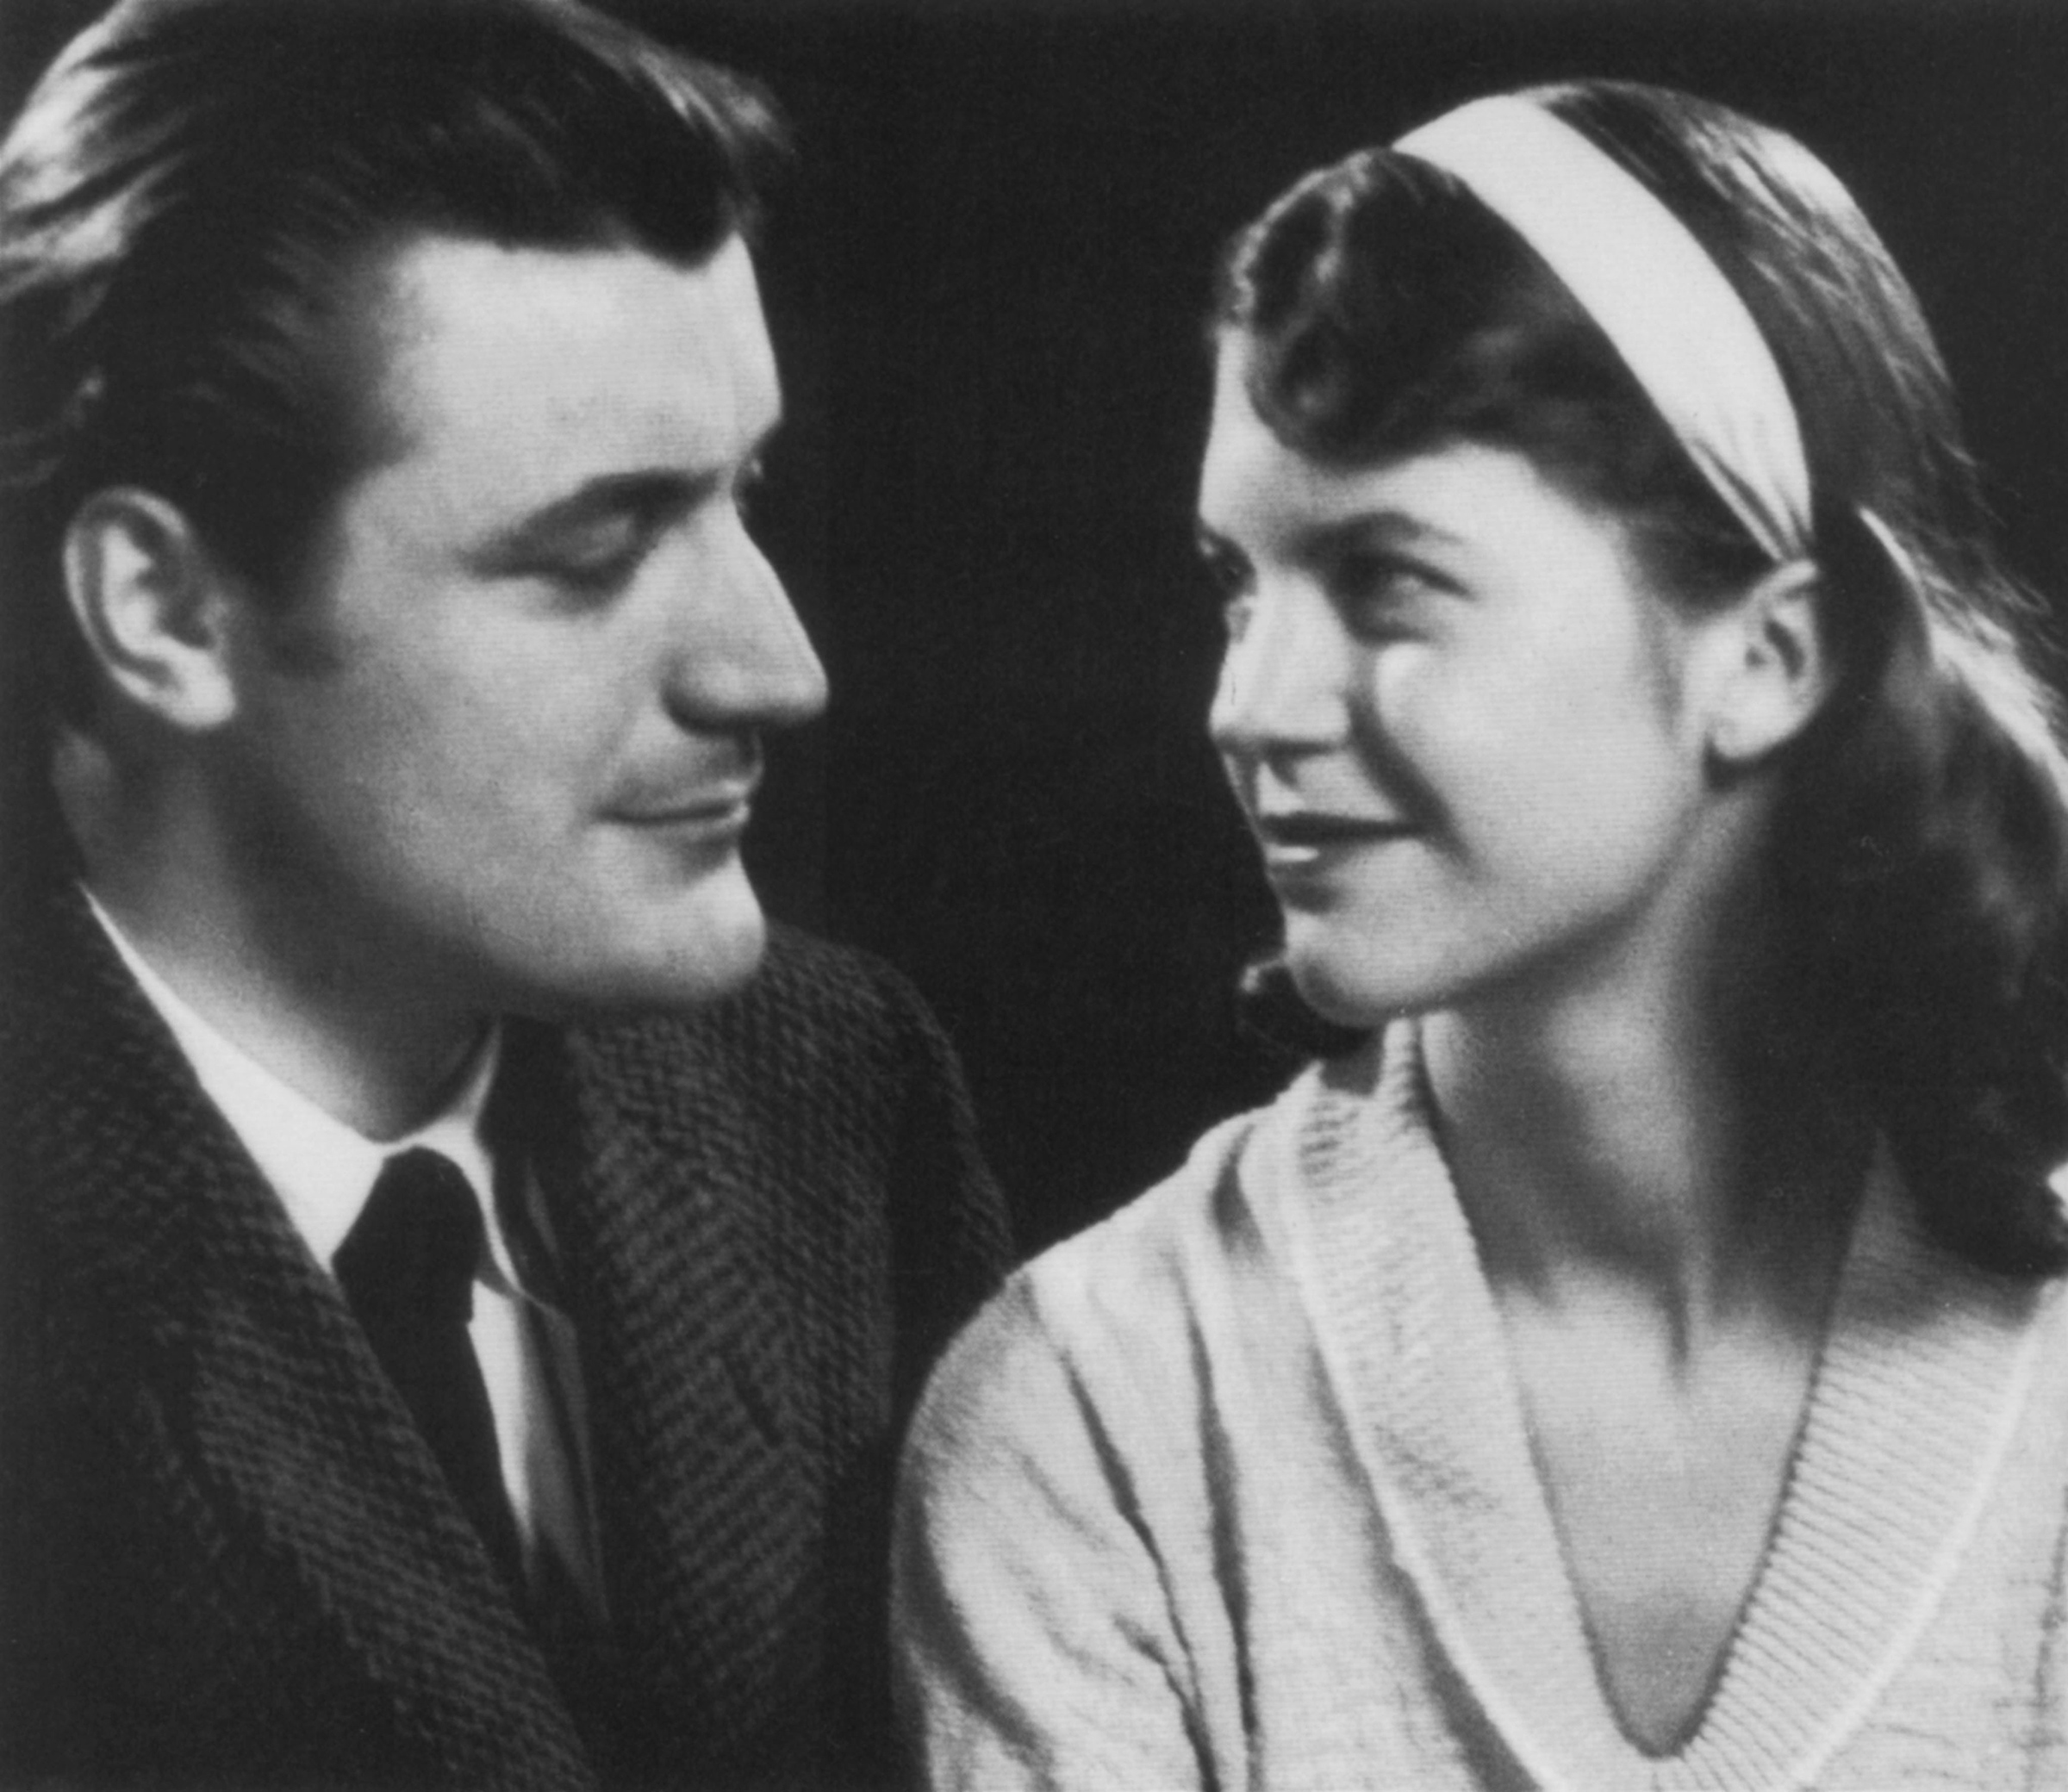 Sylvia Plath with her husband Ted Hughes in England, 1956